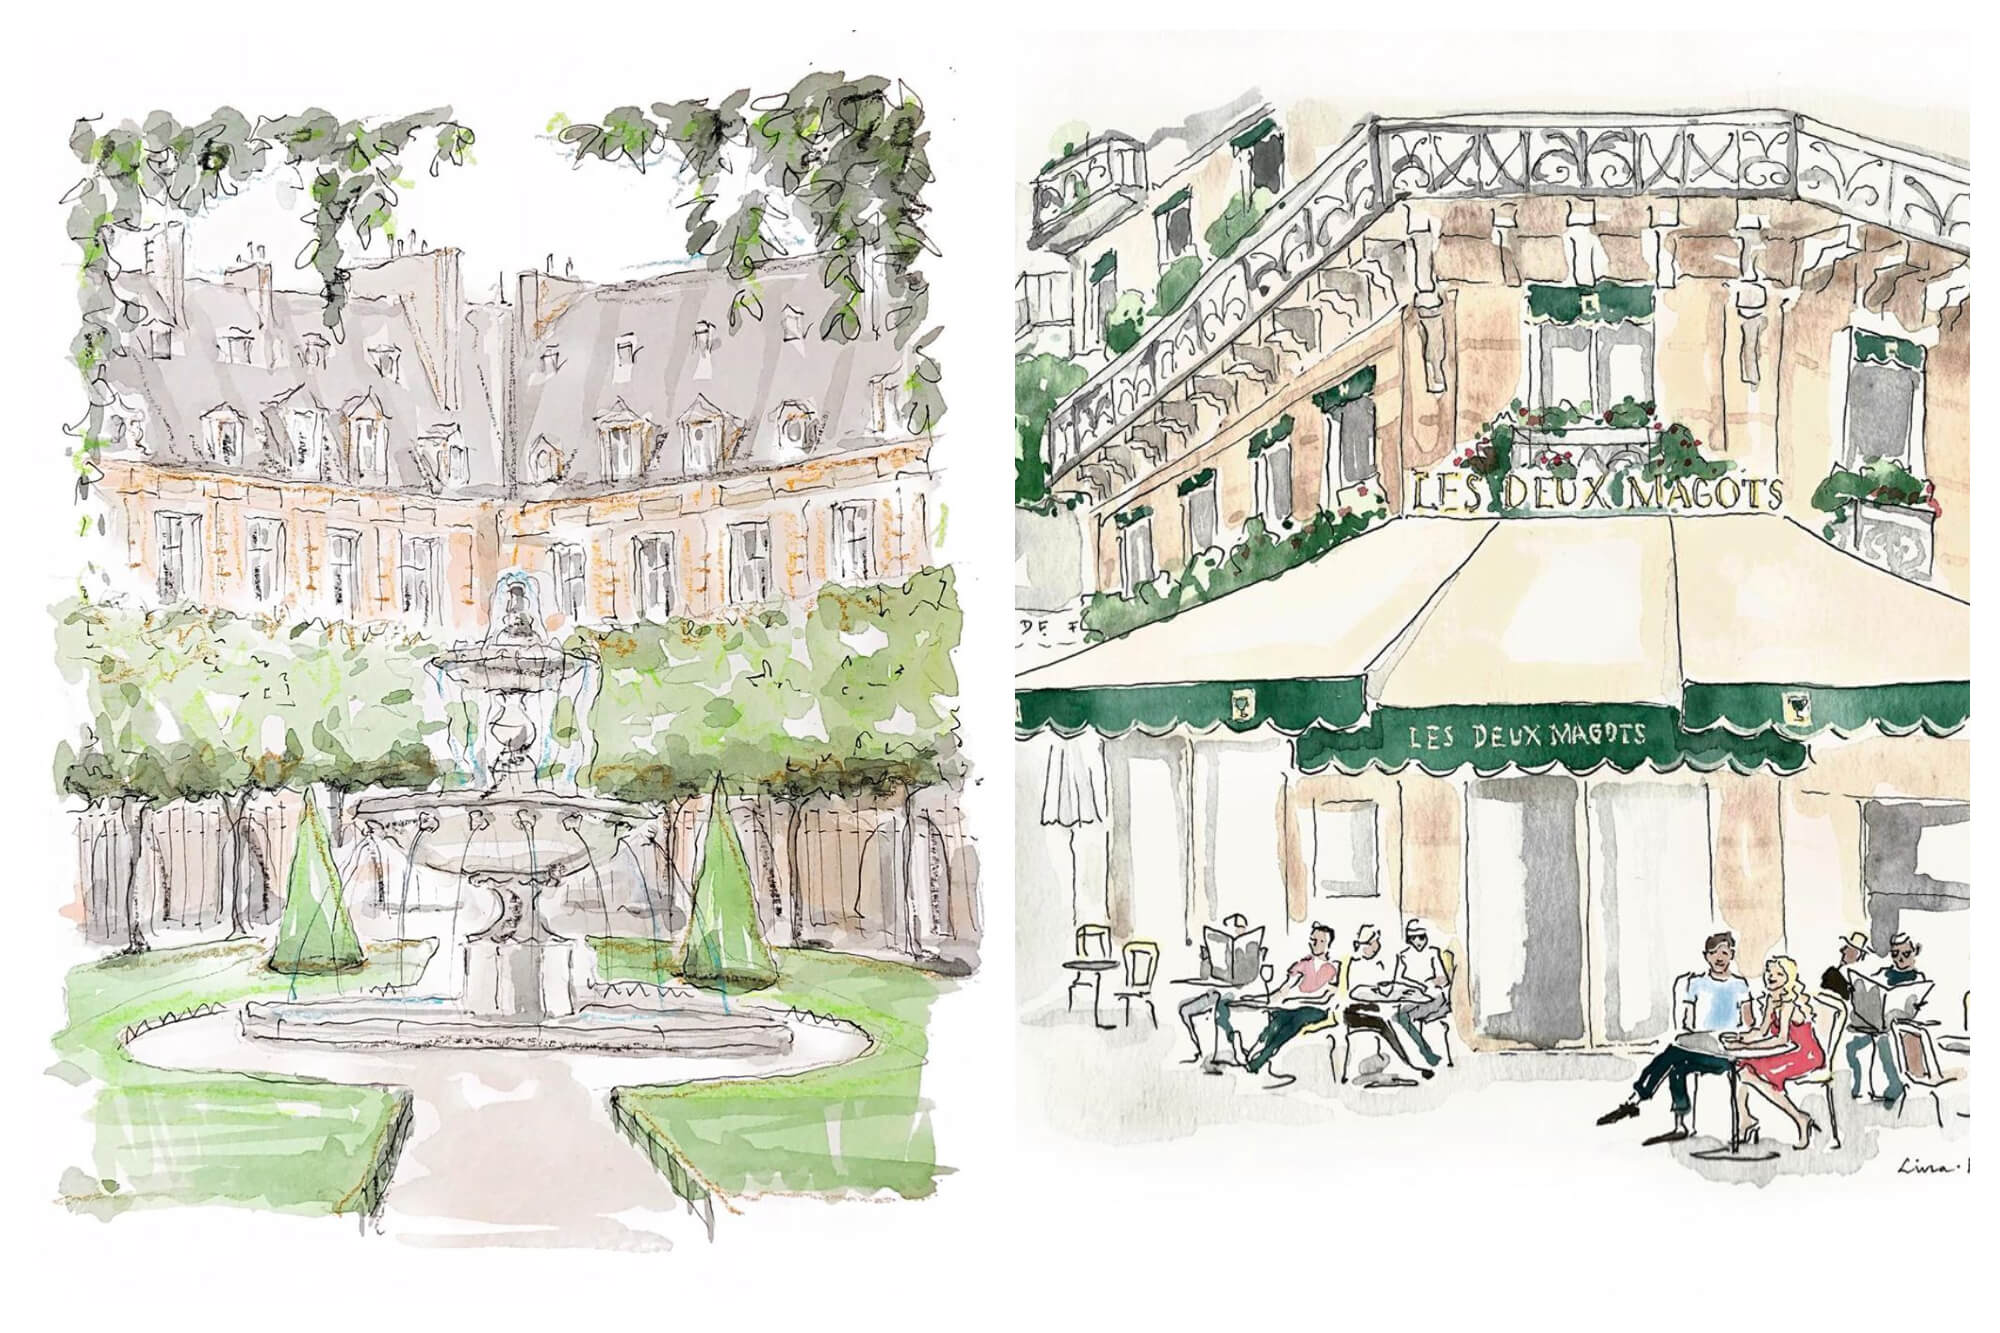 Left: A watercolor painting of a park with a fountain in the middle. There are buildings surrounding the park. Right: A watercolor of a Parisian cafe called Les Deux Magots. There are people sitting at tables outside and there is a green and cream colored awning.